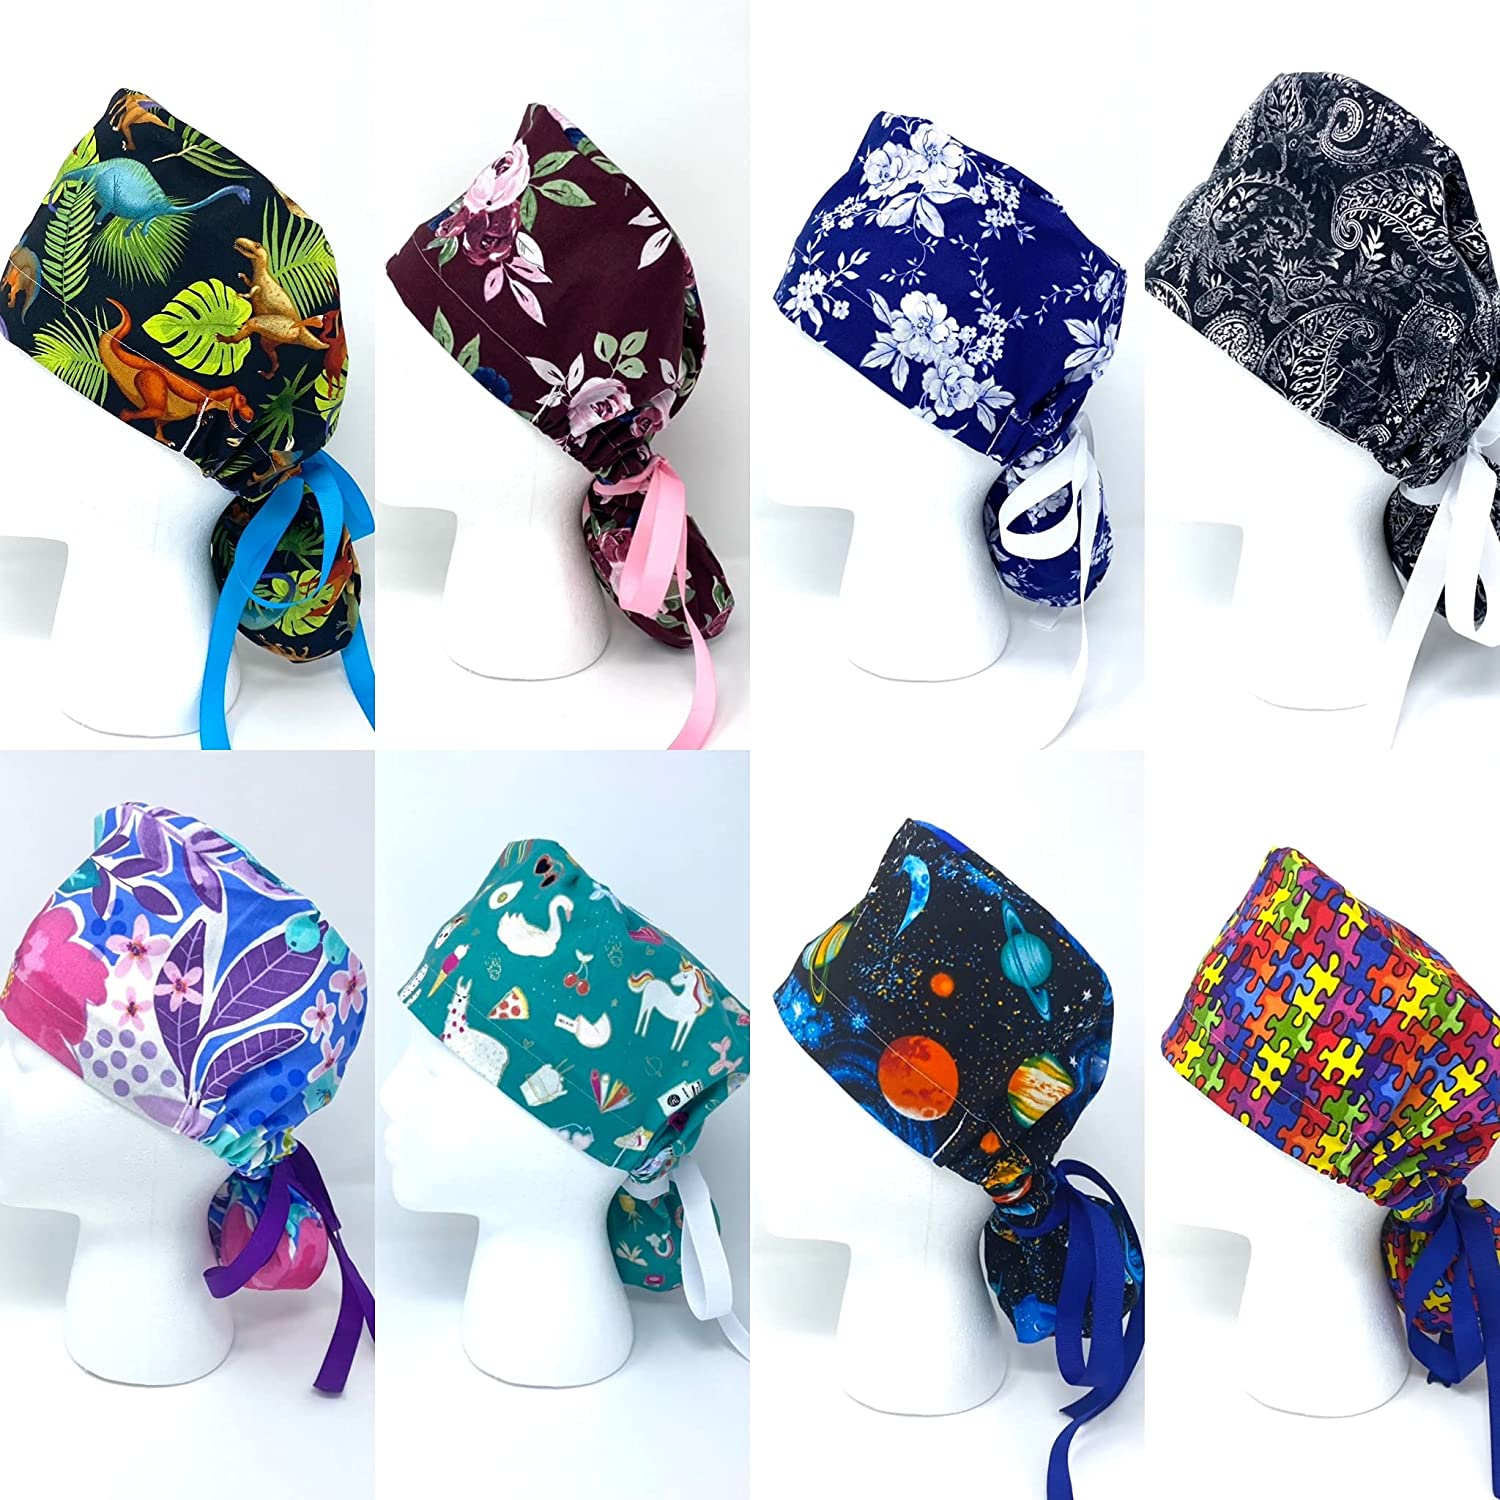 Women's Surgical Hat Max 54% OFF Bright OFFicial store Scrub Floral